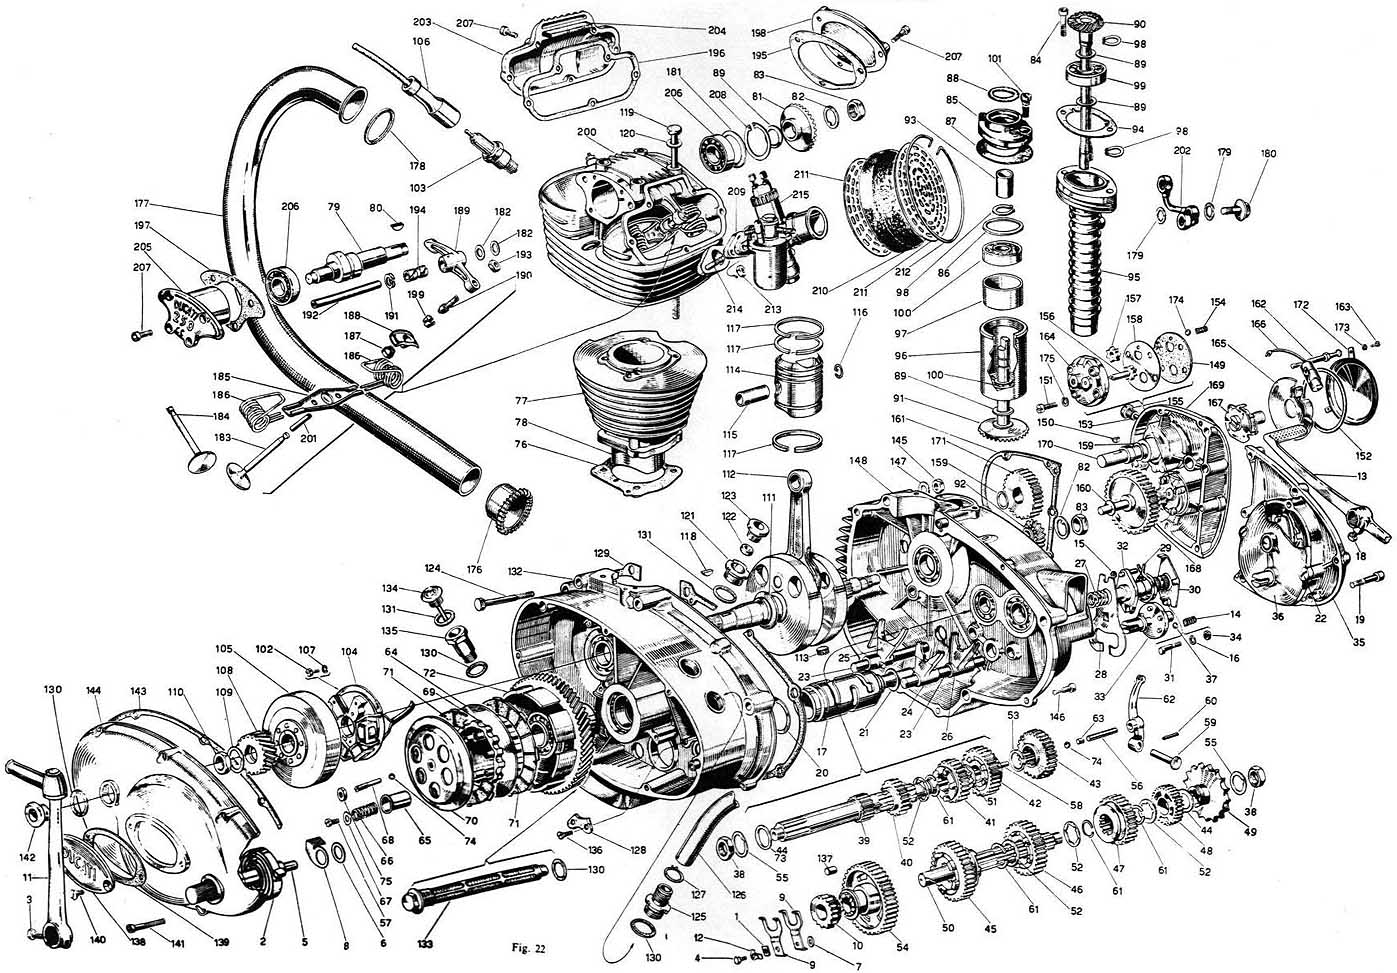 A 11 likewise Yfz450 Carb Diagram in addition Yfz 450 Wiring Diagram Readingrat   Within Yamaha together with Wiring Diagram For 2002 Grizzly likewise 700r Wiring Diagram. on yamaha raptor 660 wiring diagram